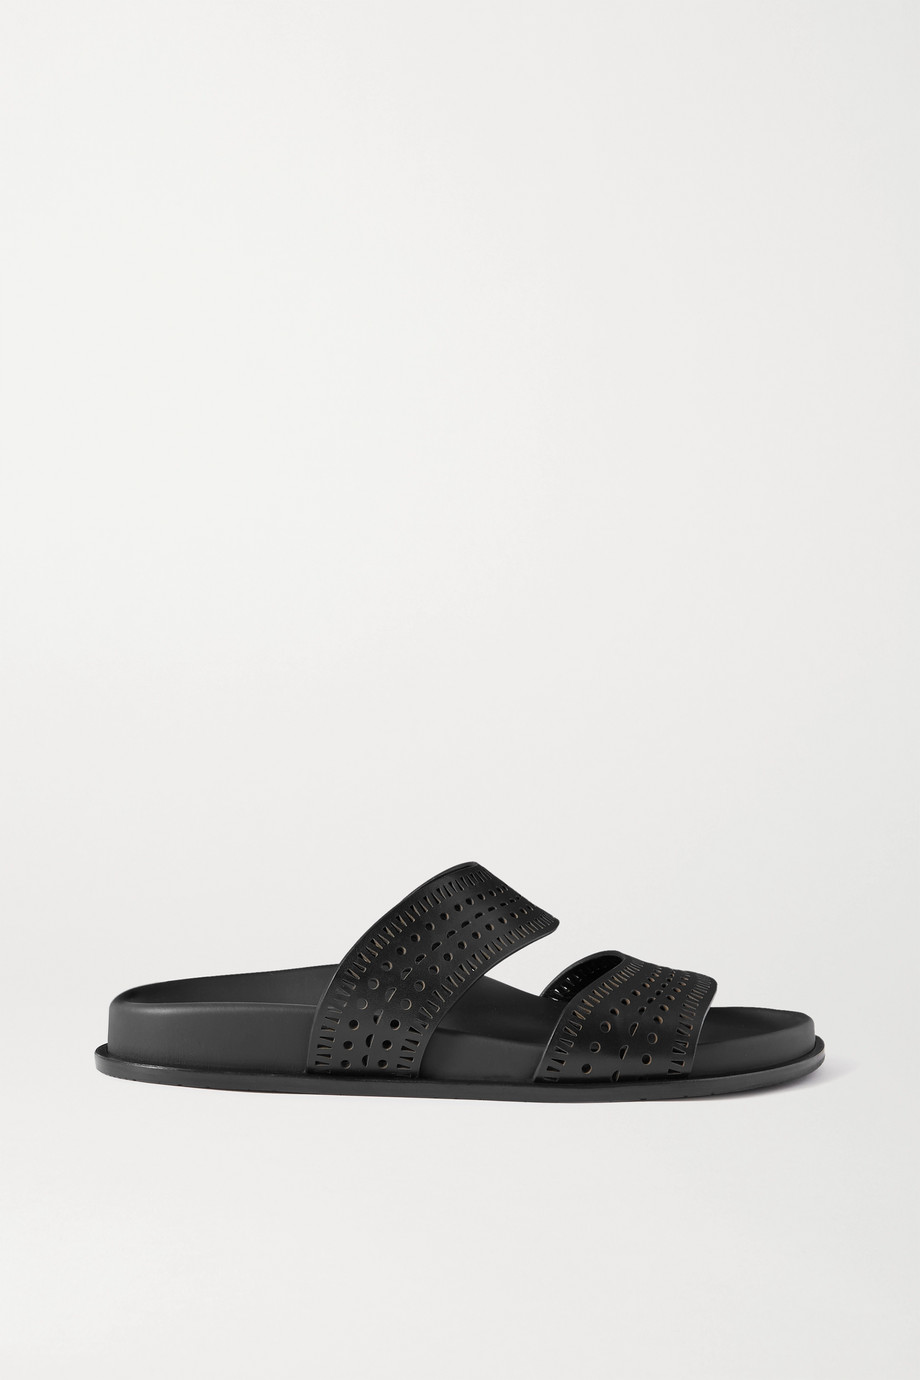 Alaïa Laser-cut leather slides